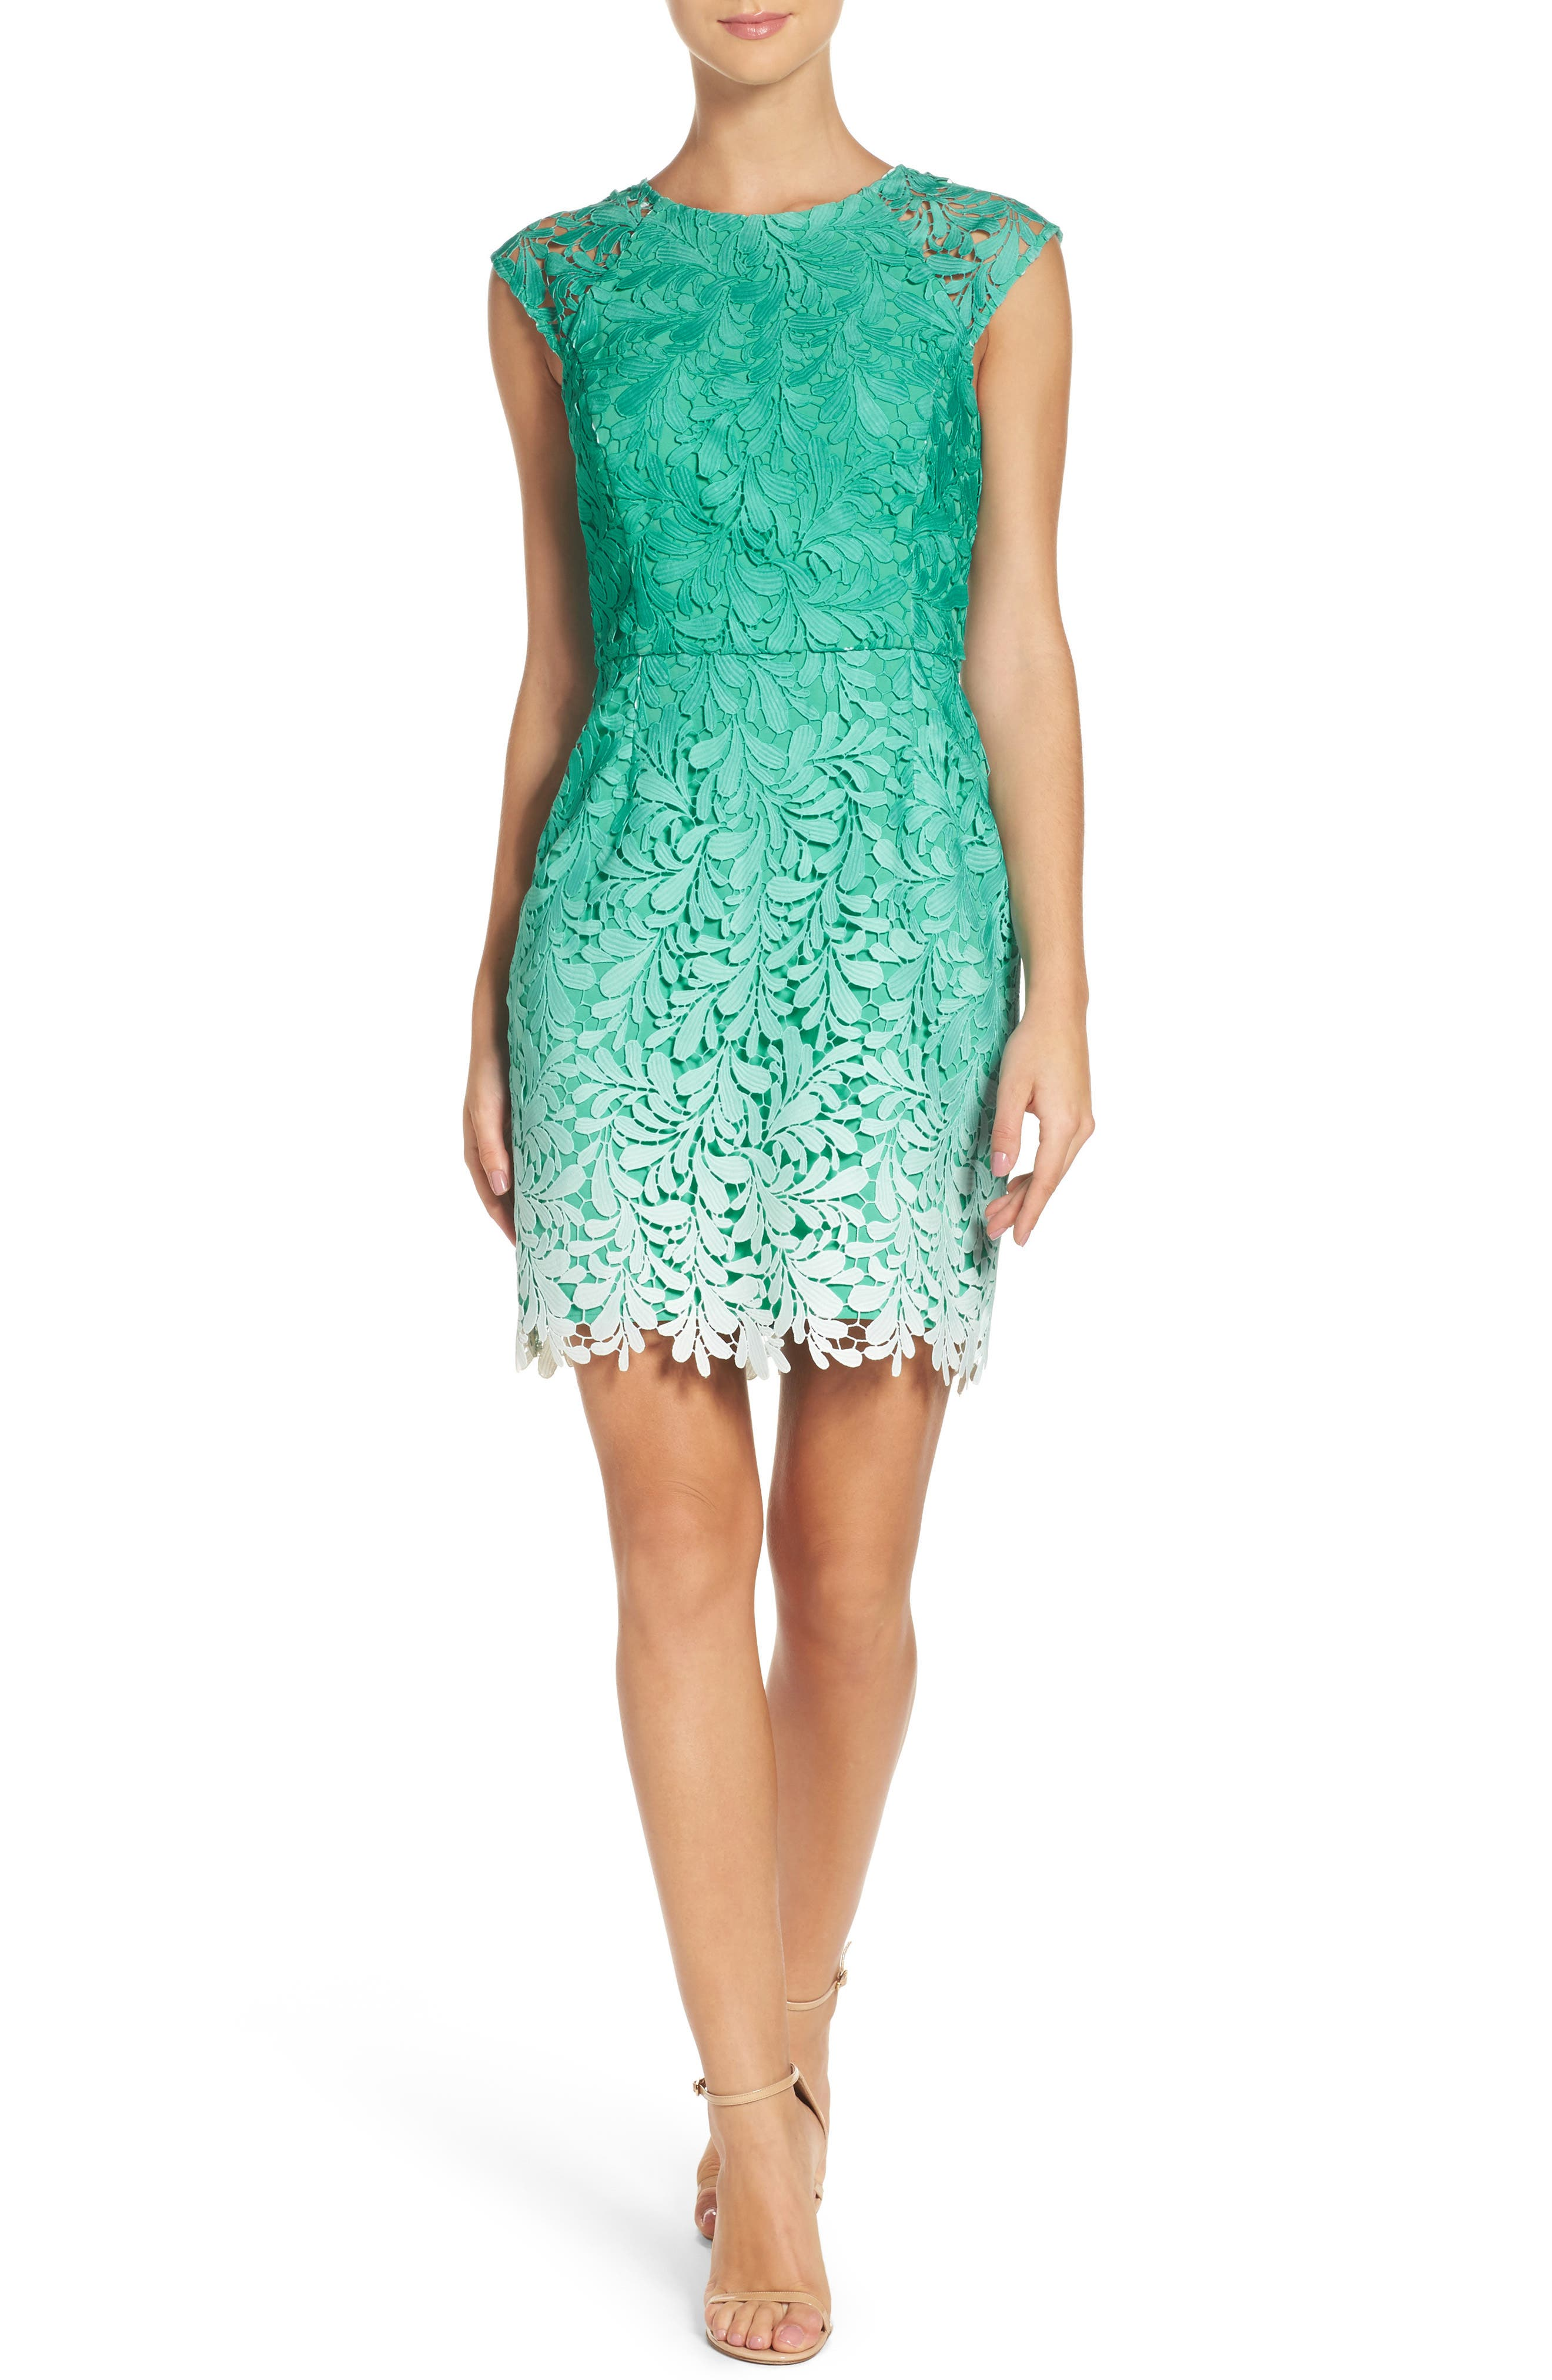 Ombré Lace Sheath Dress,                             Main thumbnail 1, color,                             Seafoam